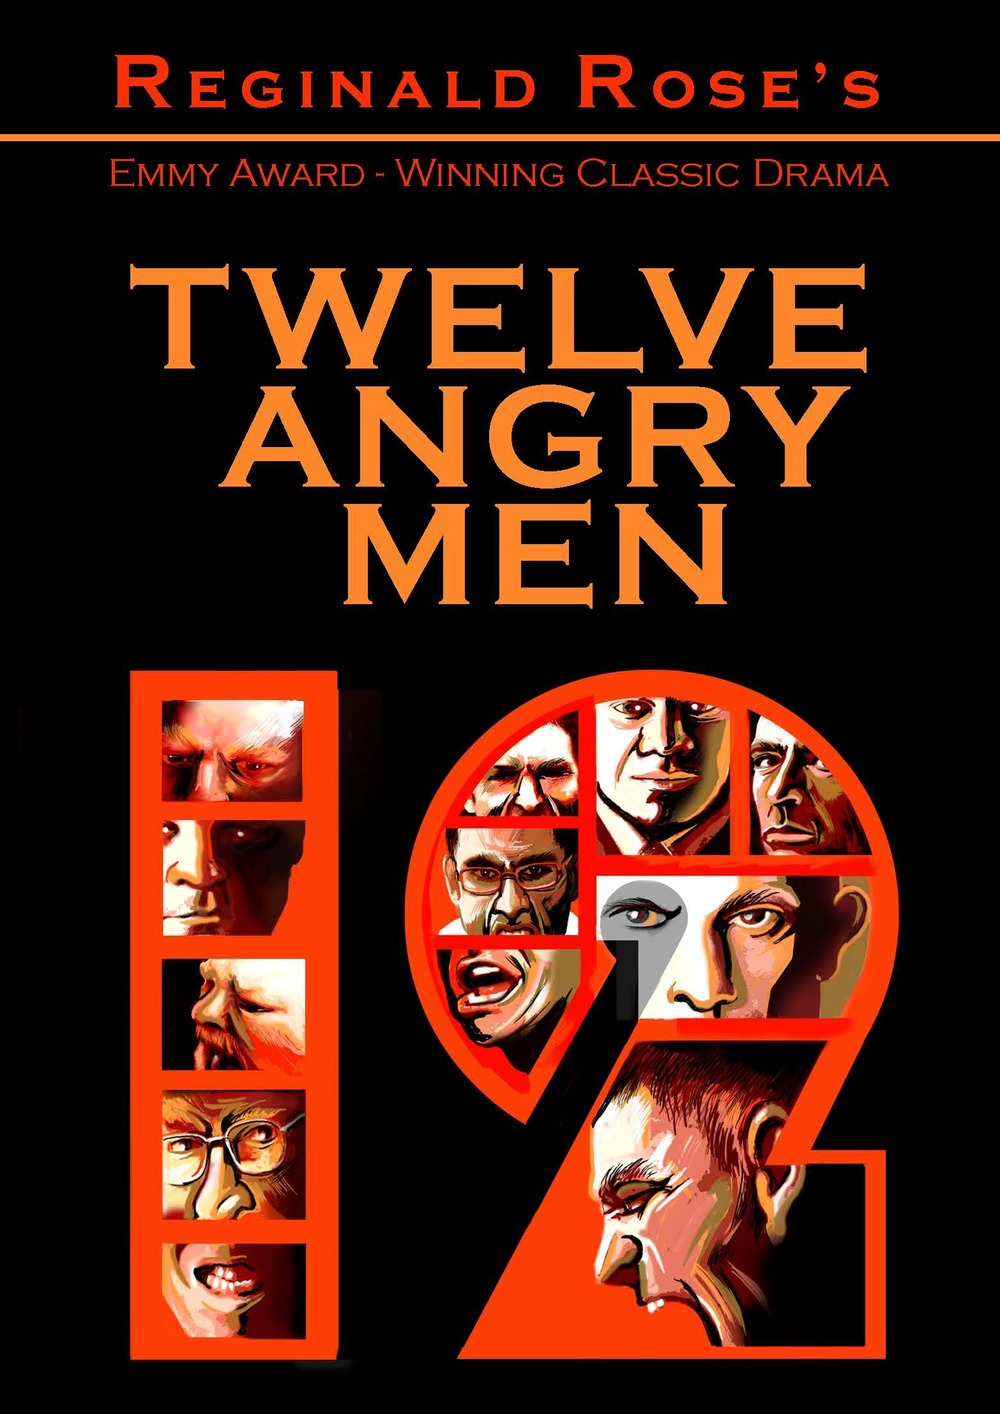 an analysis of the storyline in twelve angry men by reginald rose In form, 12 angry men is a courtroom drama in purpose, it's a crash course in those passages of the constitution that promise defendants a fair trial and the presumption of innocence it has a kind of stark simplicity: apart from a brief setup and a briefer epilogue, the entire film takes place.